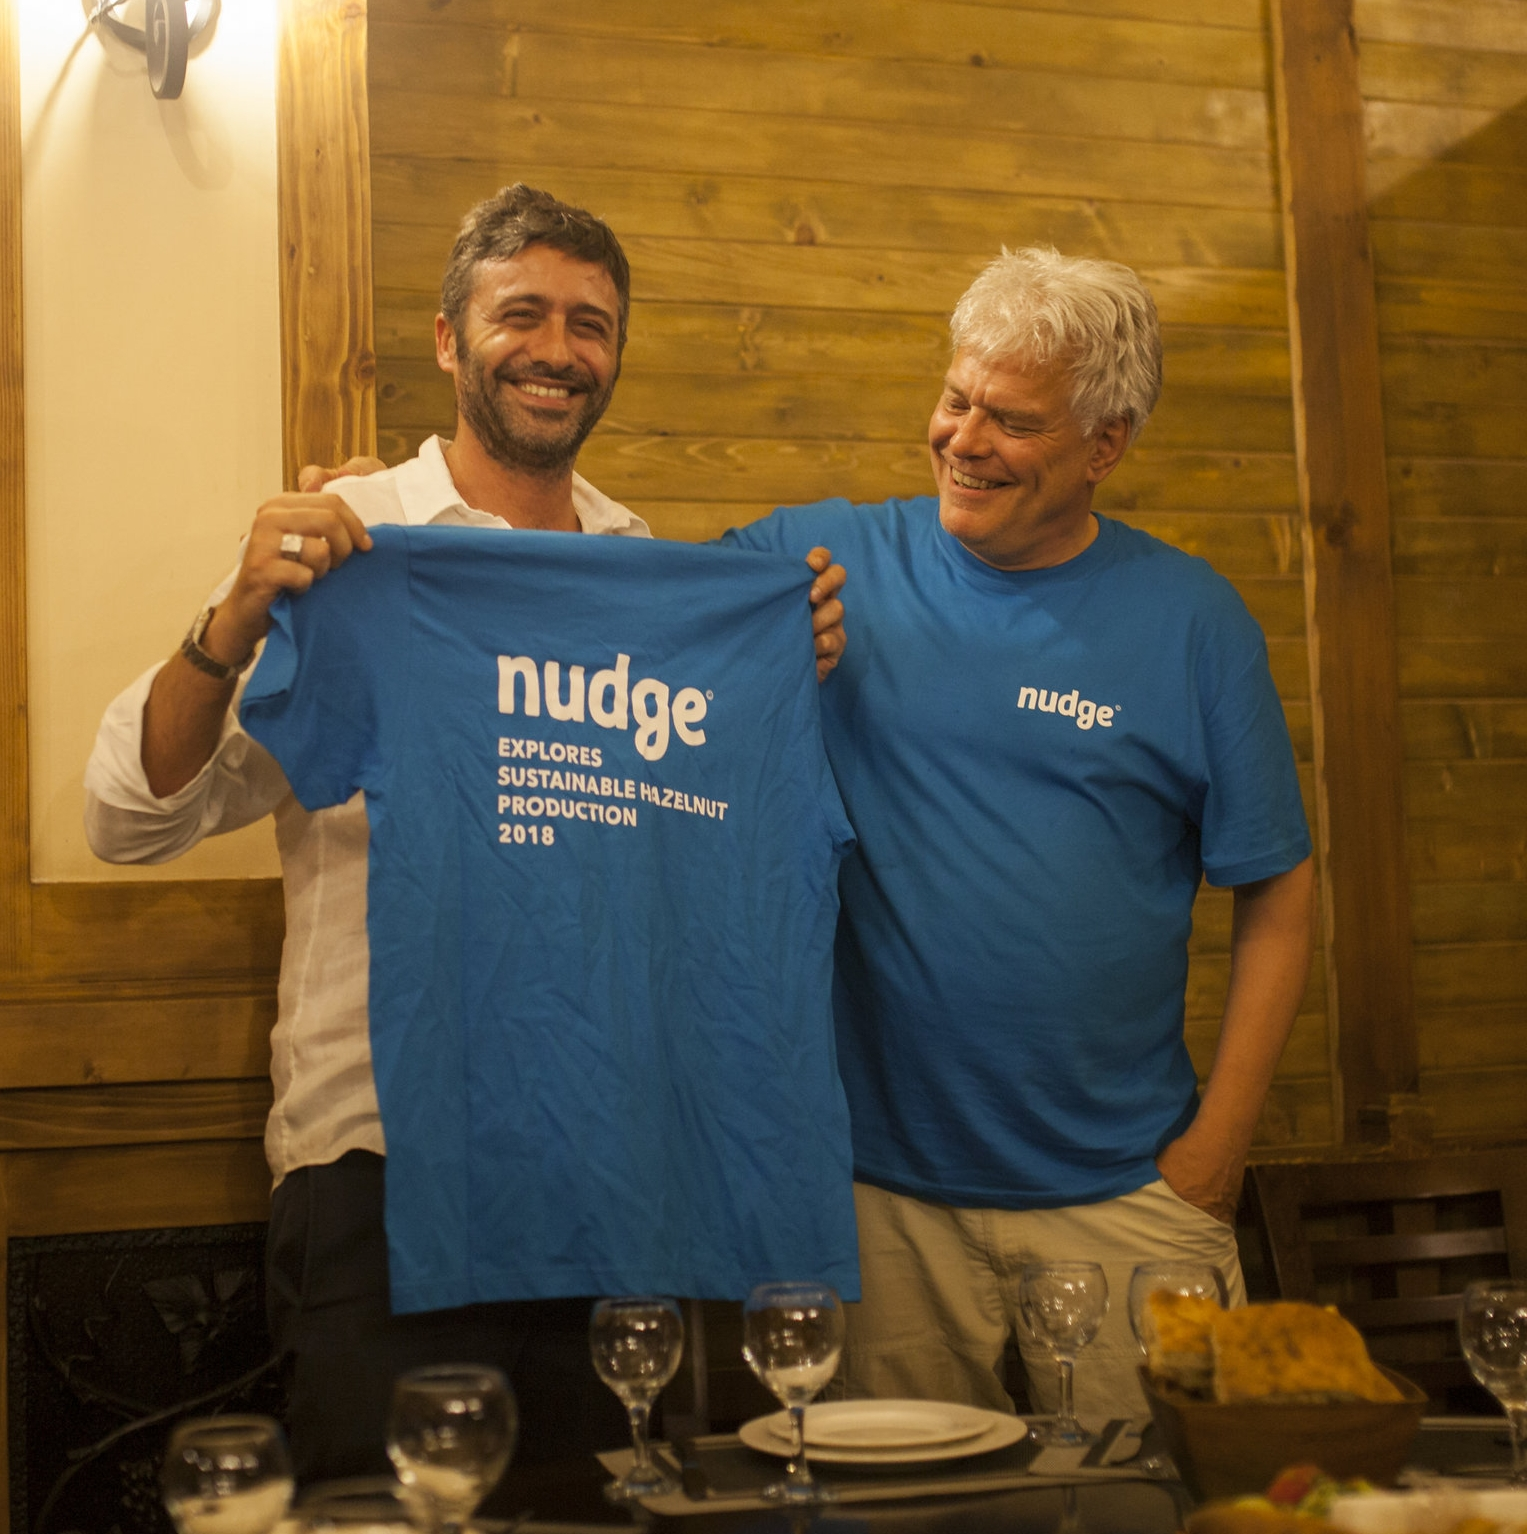 Federico Maria Grati (General Manager,AgriGeorgia) and Jan van Betten (Founder of Nudge)